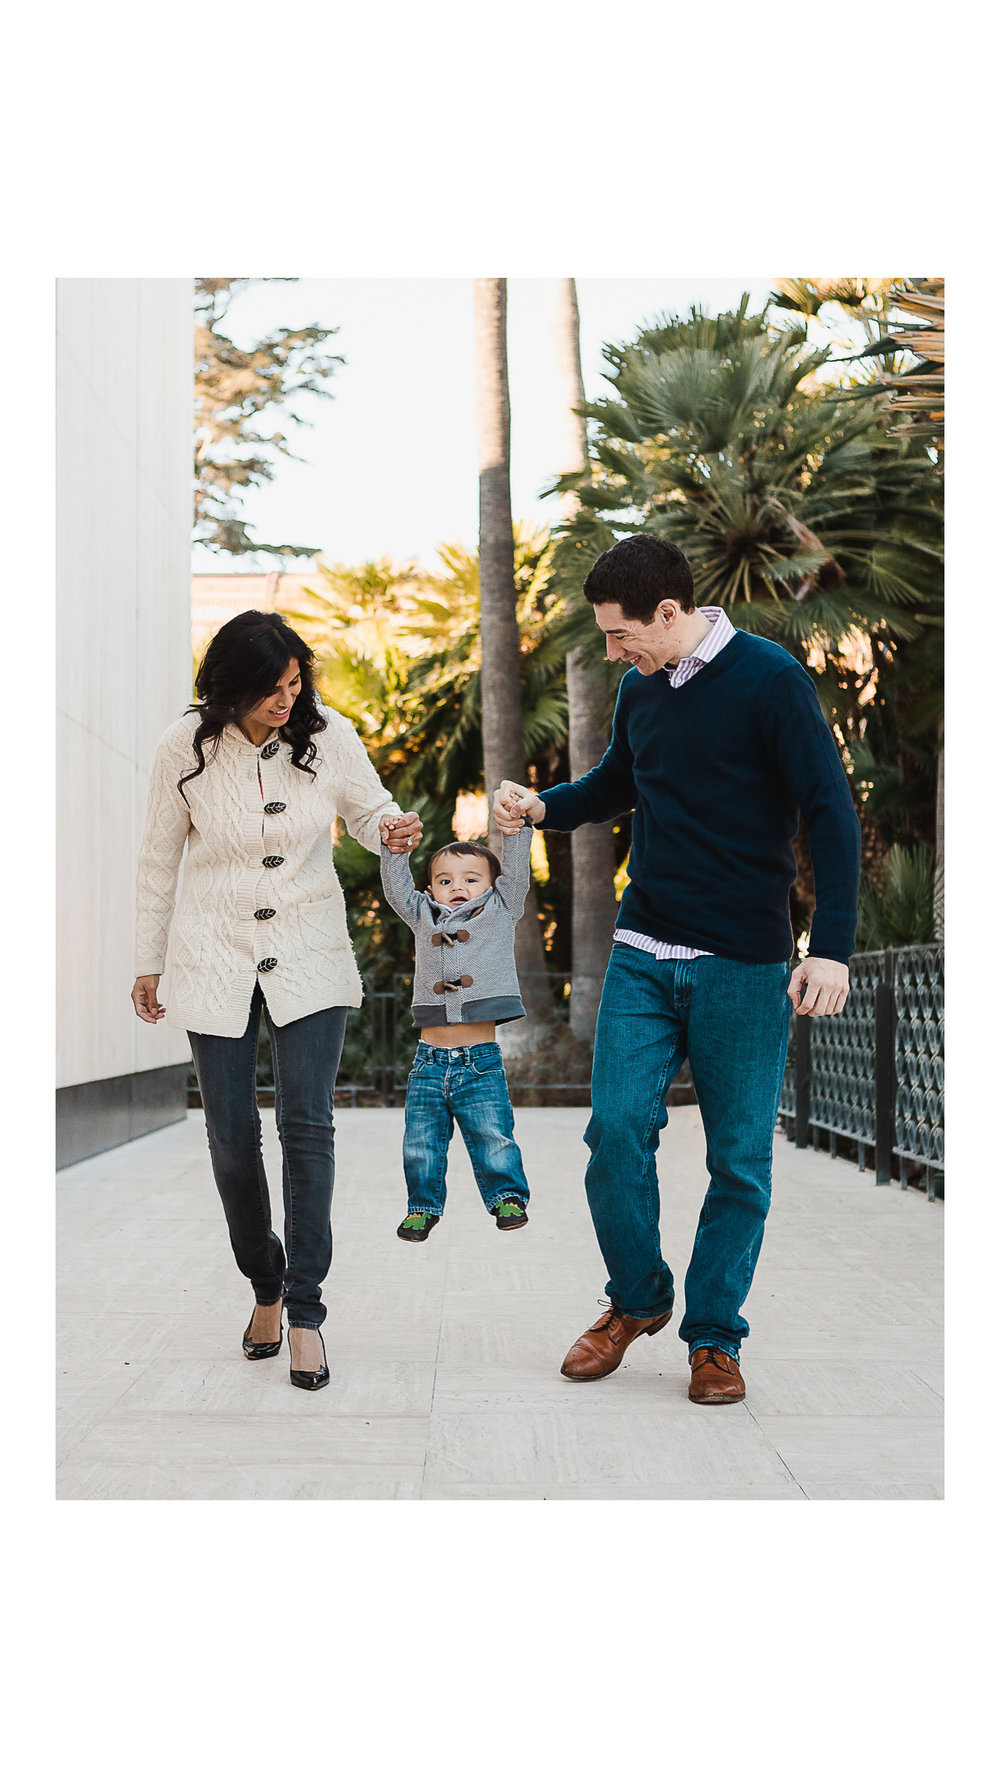 San Diego Family Photography in Balboa Park